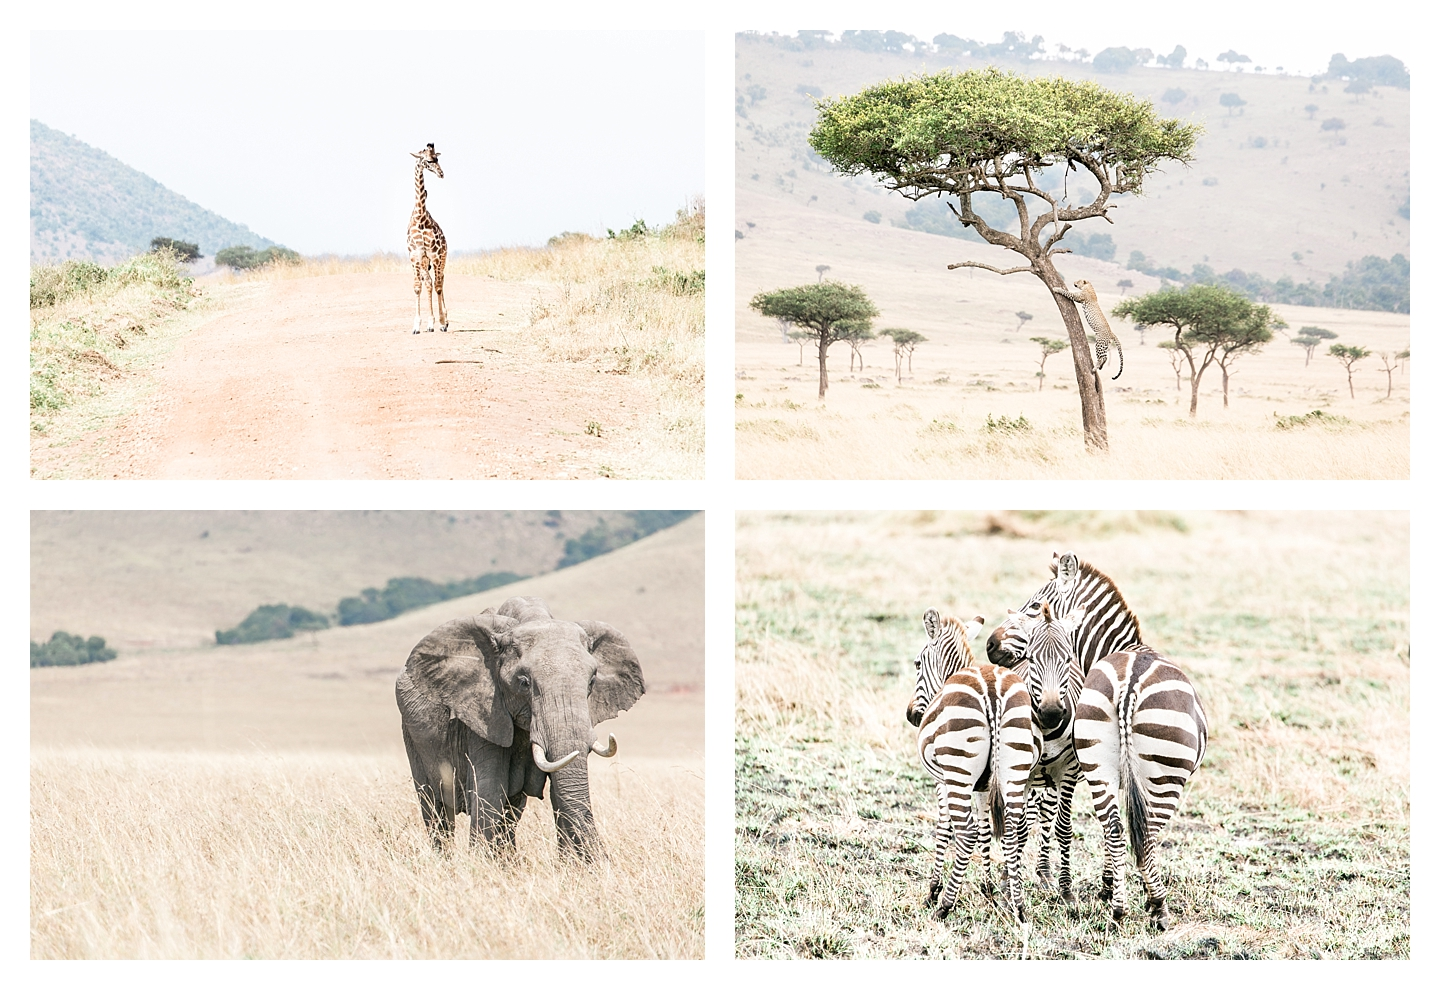 Wildlife in Masai Mara, Kenya, Africa | © The Globetrotter Collective - https://www.theglobetrottercollective.com